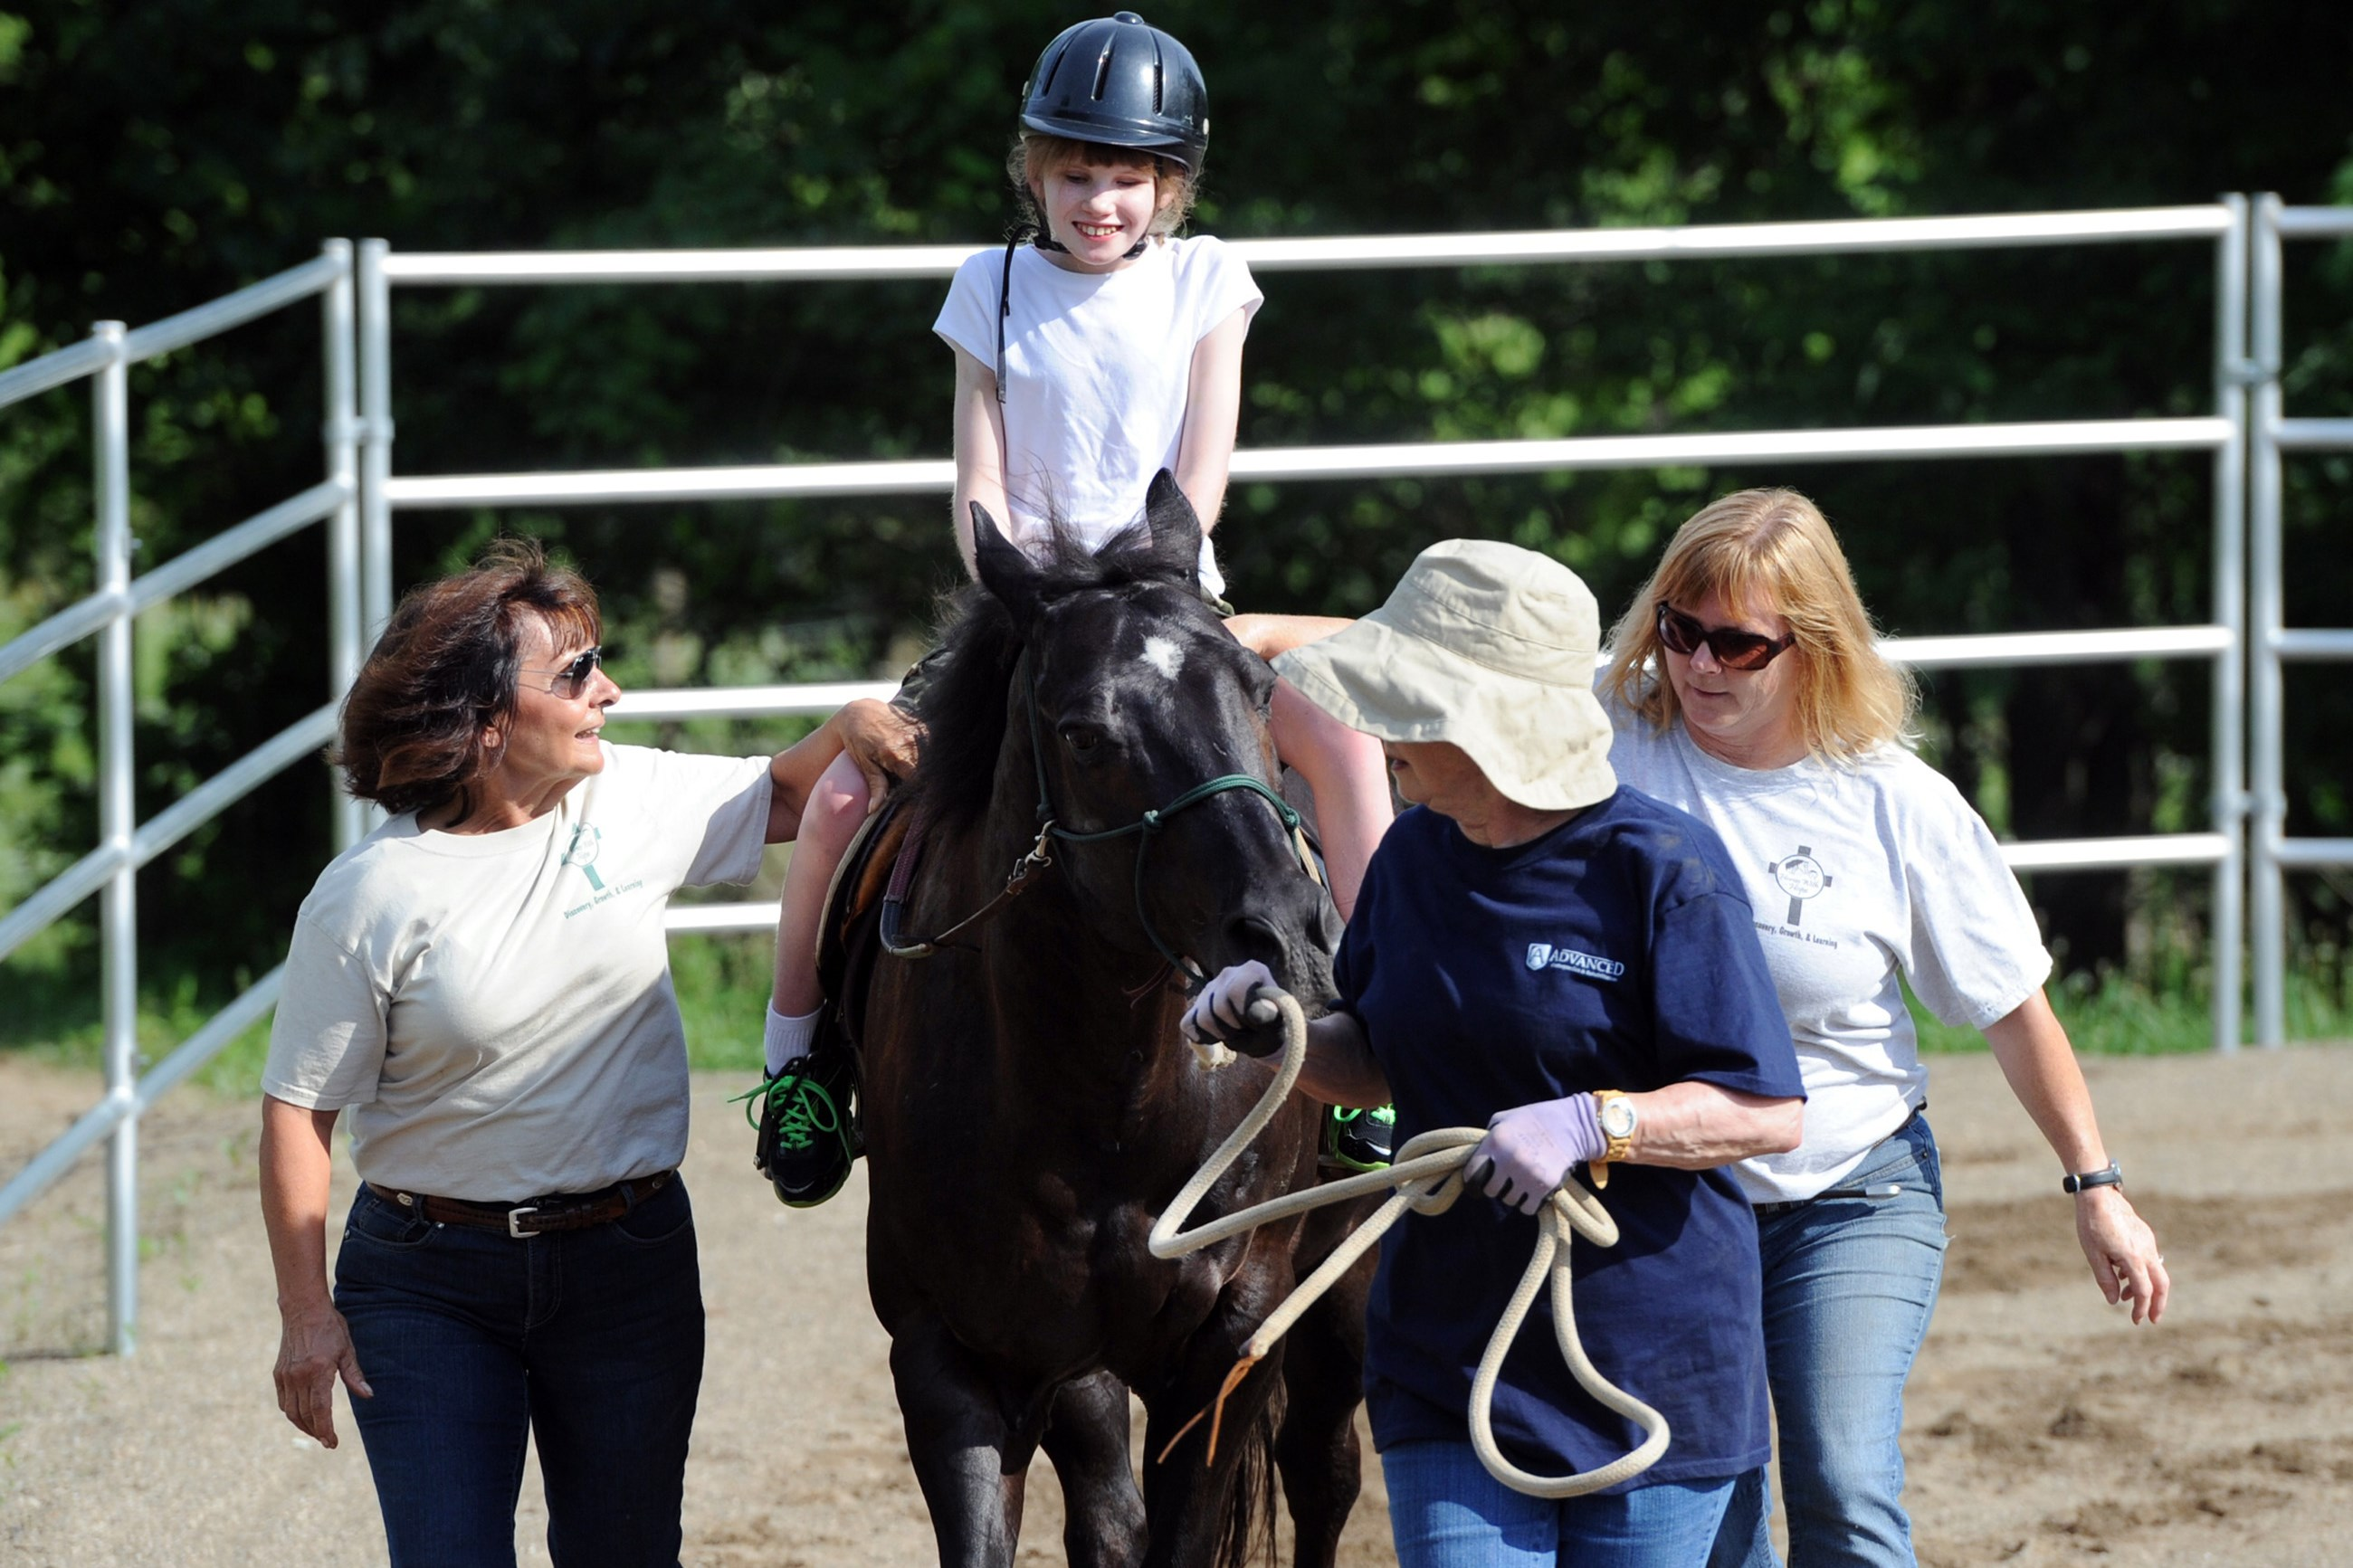 Kaylee Doyle, 12, of Scott rides at the Horses with Hope ranch in Bethel Park. Volunteers Joanne Murdy, left, Barbara Bach, center, and Anne Davis assist Kaylee around the track.